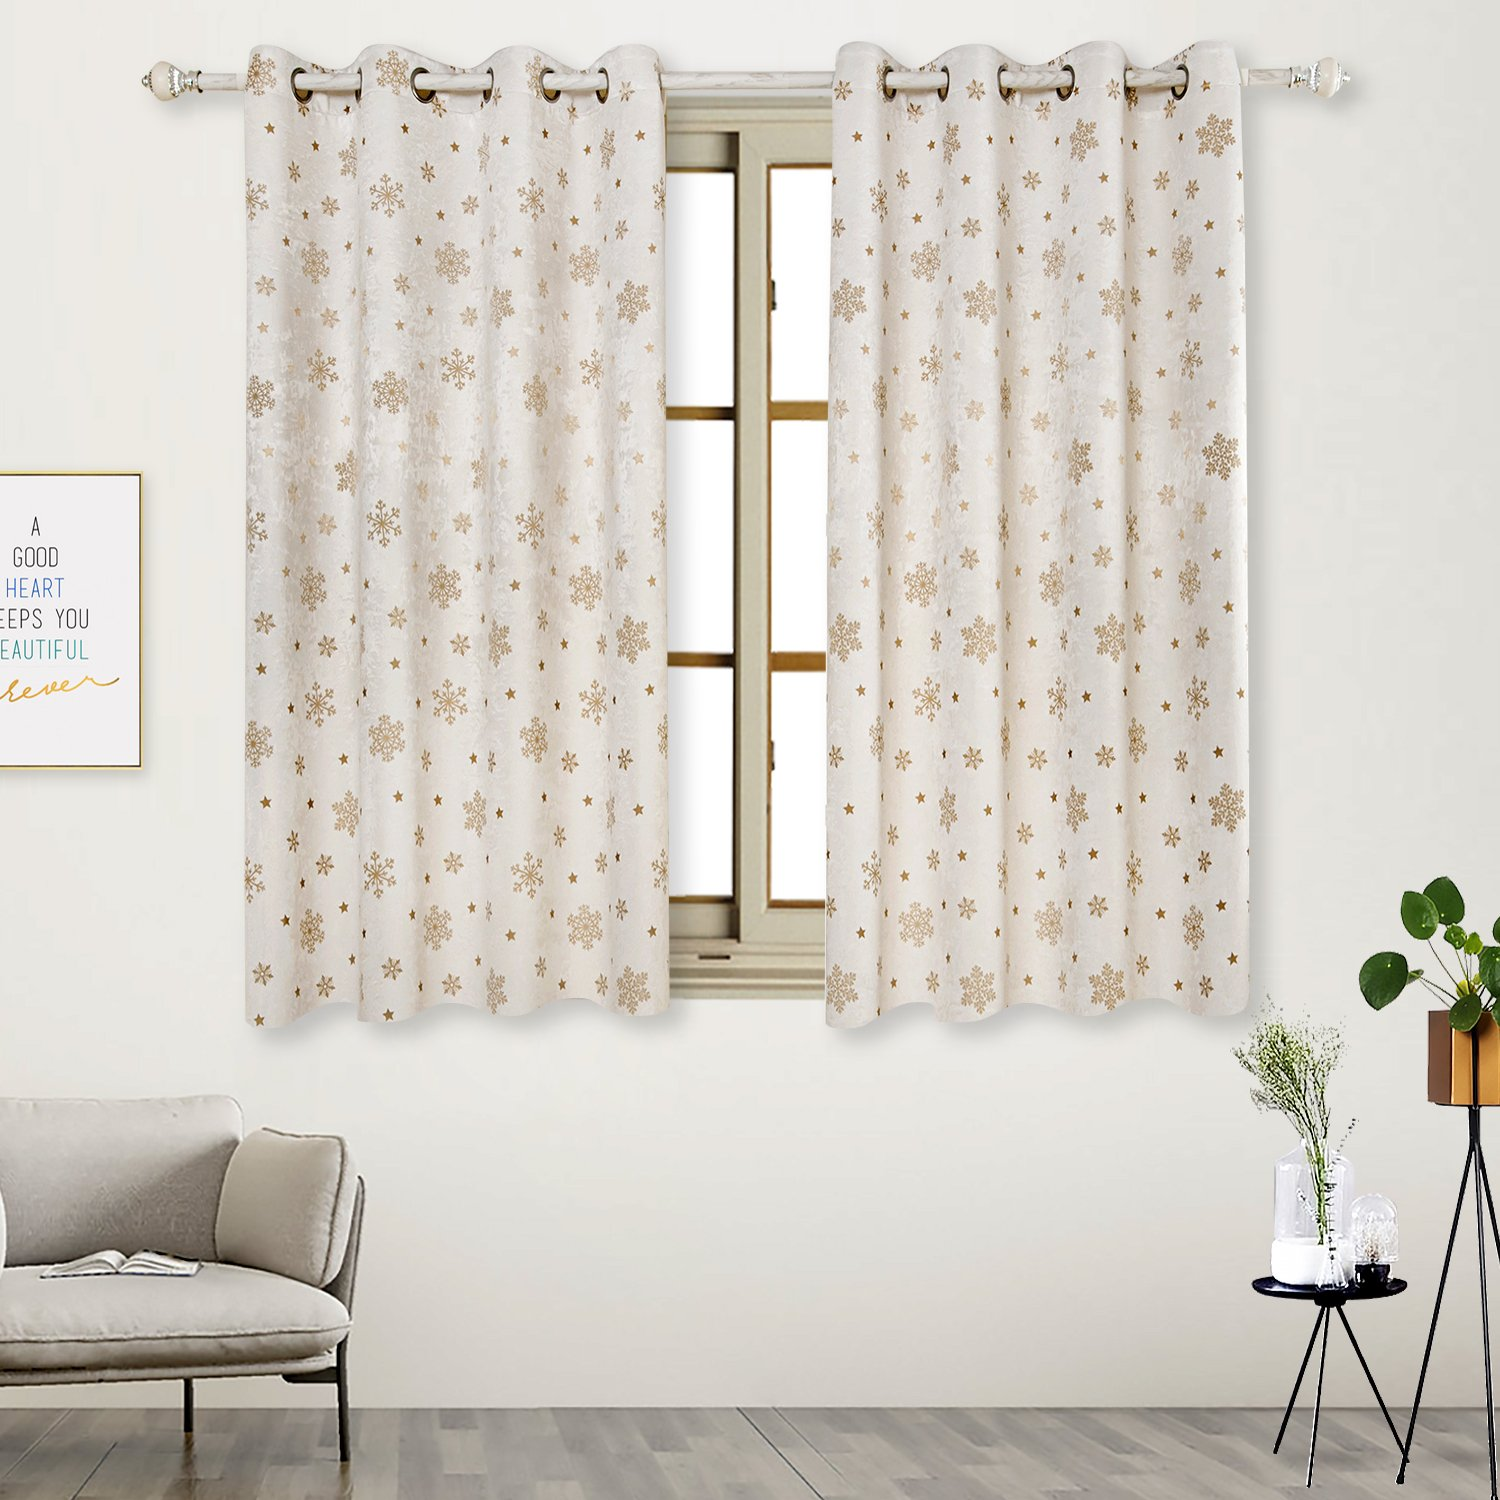 2 Panels, Decor Curtains Geometric Square Printed Room Darkening Metal Grommets Window Cloth(Beige,42 Wx63 L) 42 Wx63 L) BGment